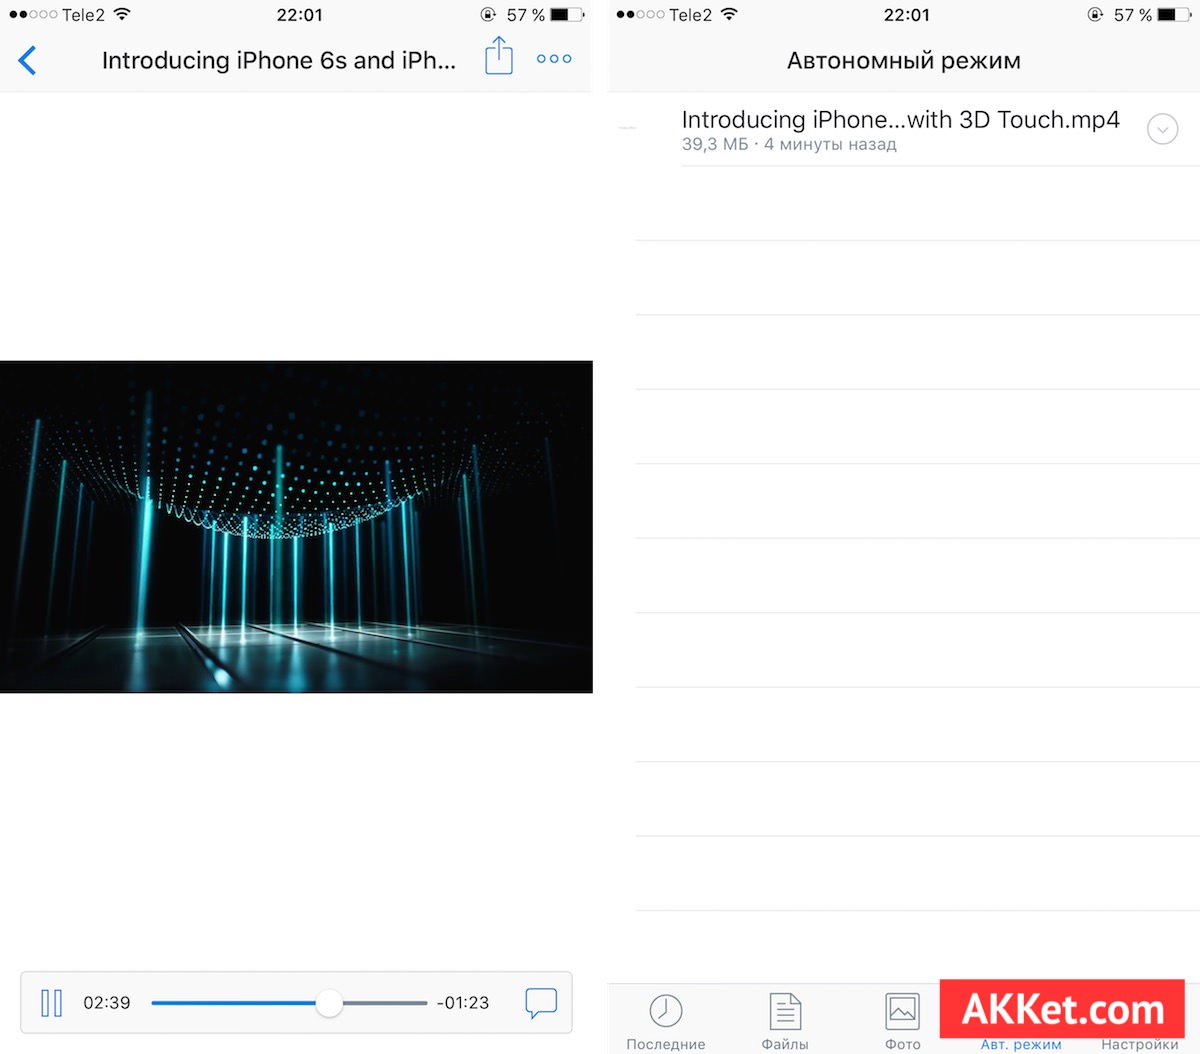 YouTube iOS 9 iOS 8 Download video no jailbreak official iPhone iPad ipod touch 5